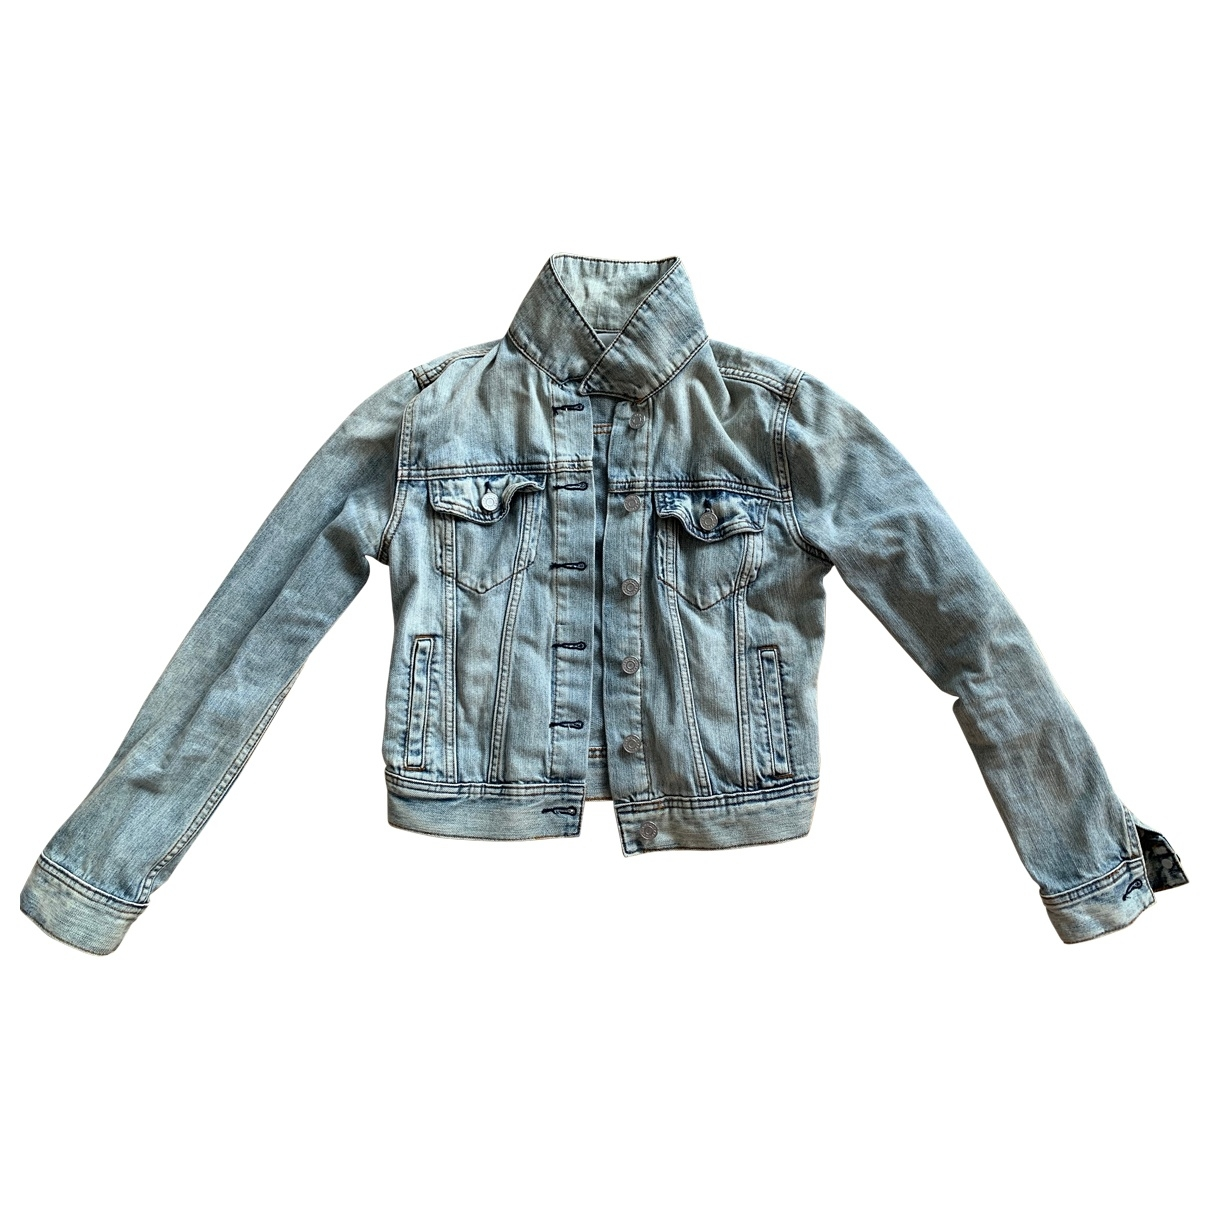 Aritzia \N Blue Denim - Jeans jacket for Women S International